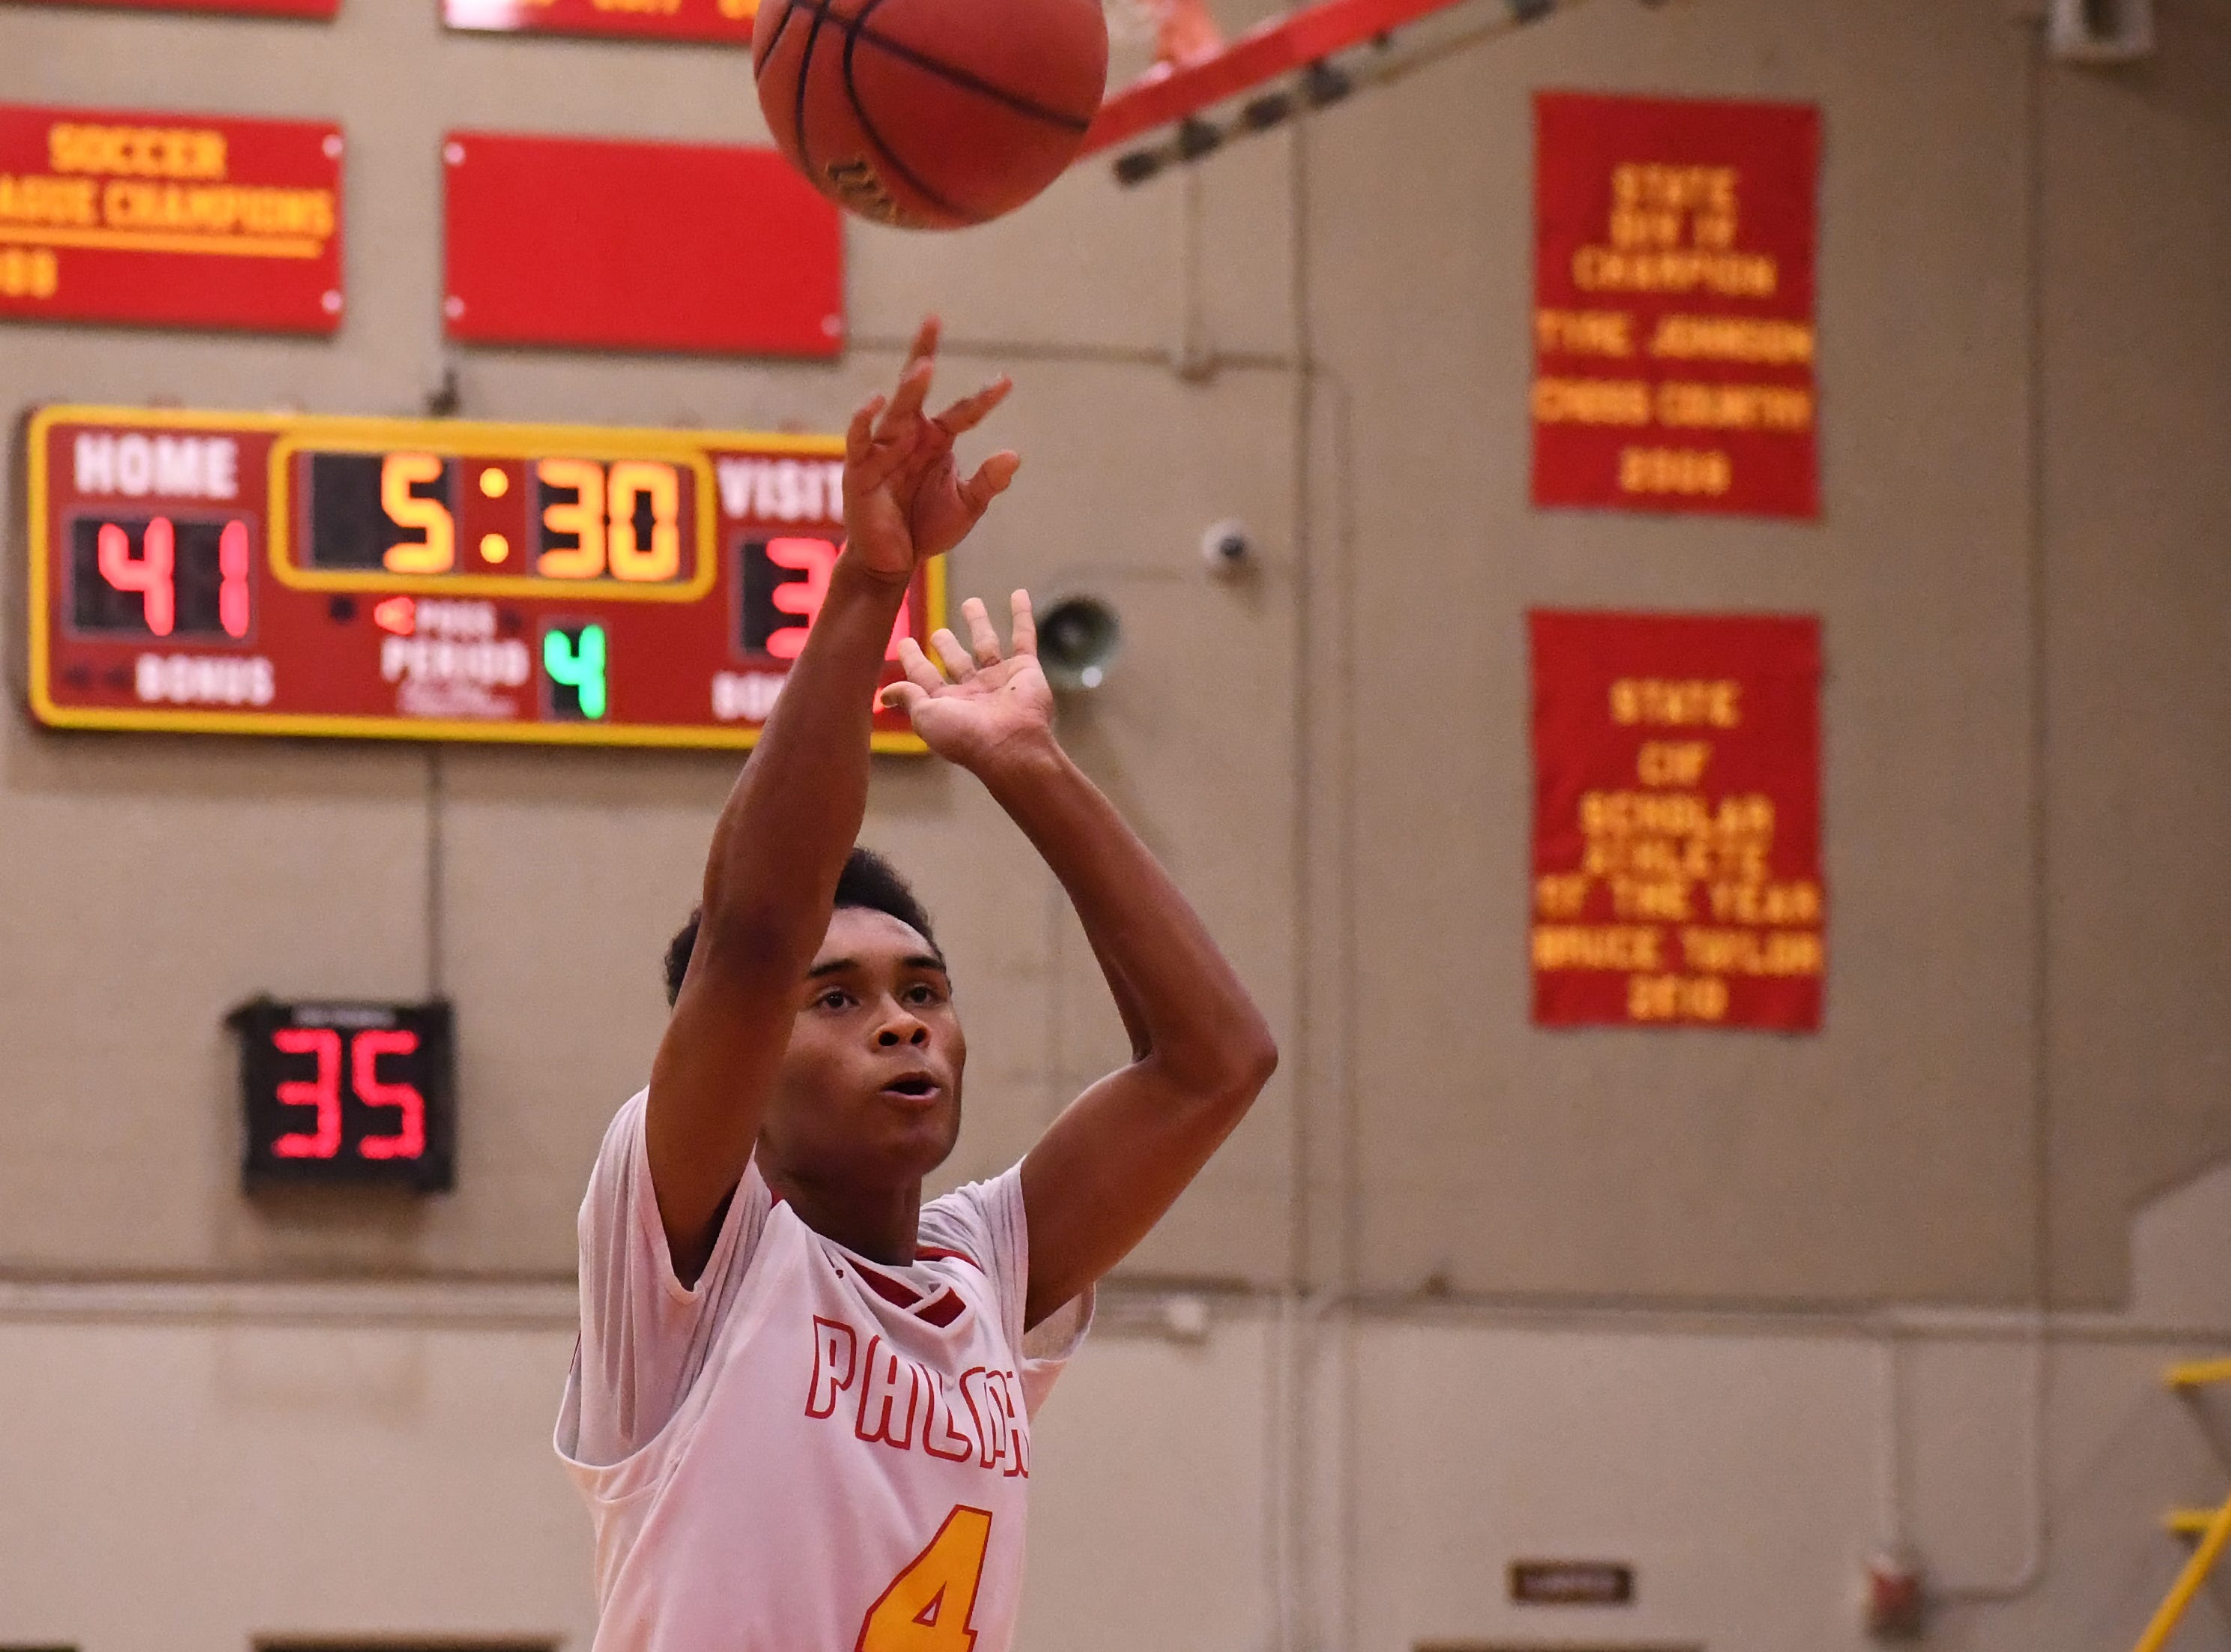 Palma guard Dante Jean-Pierre (4) shoots a free throw in the fourth quarter.